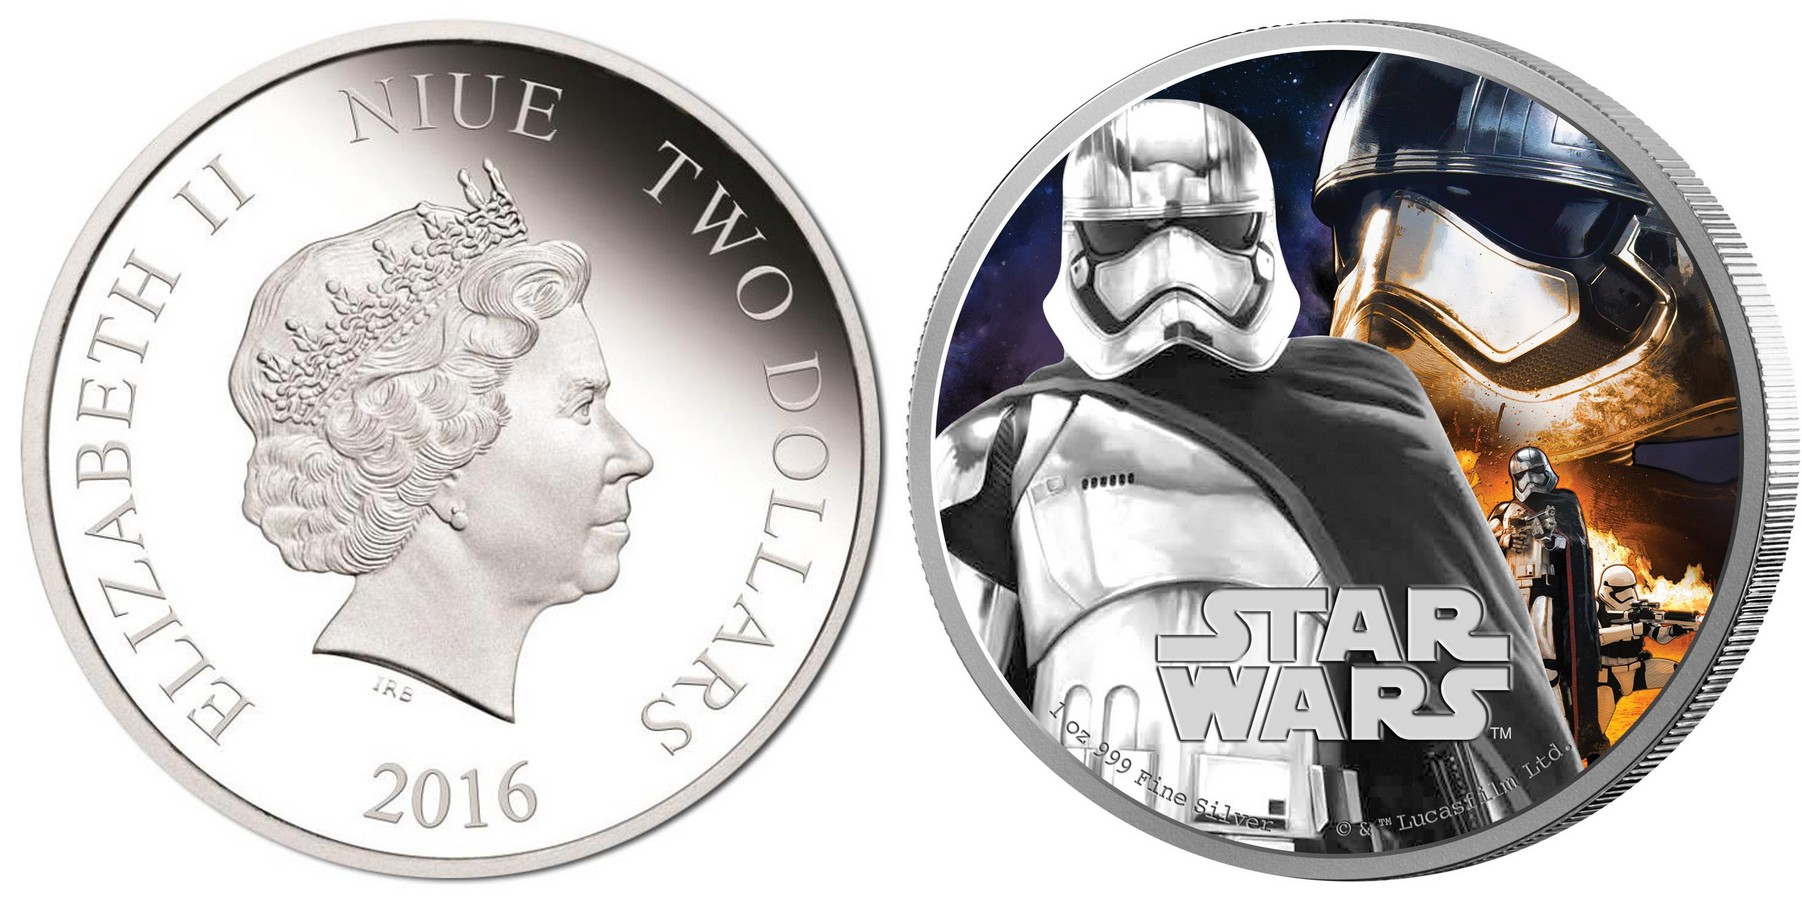 niue 2016 star wars capitaine phasma